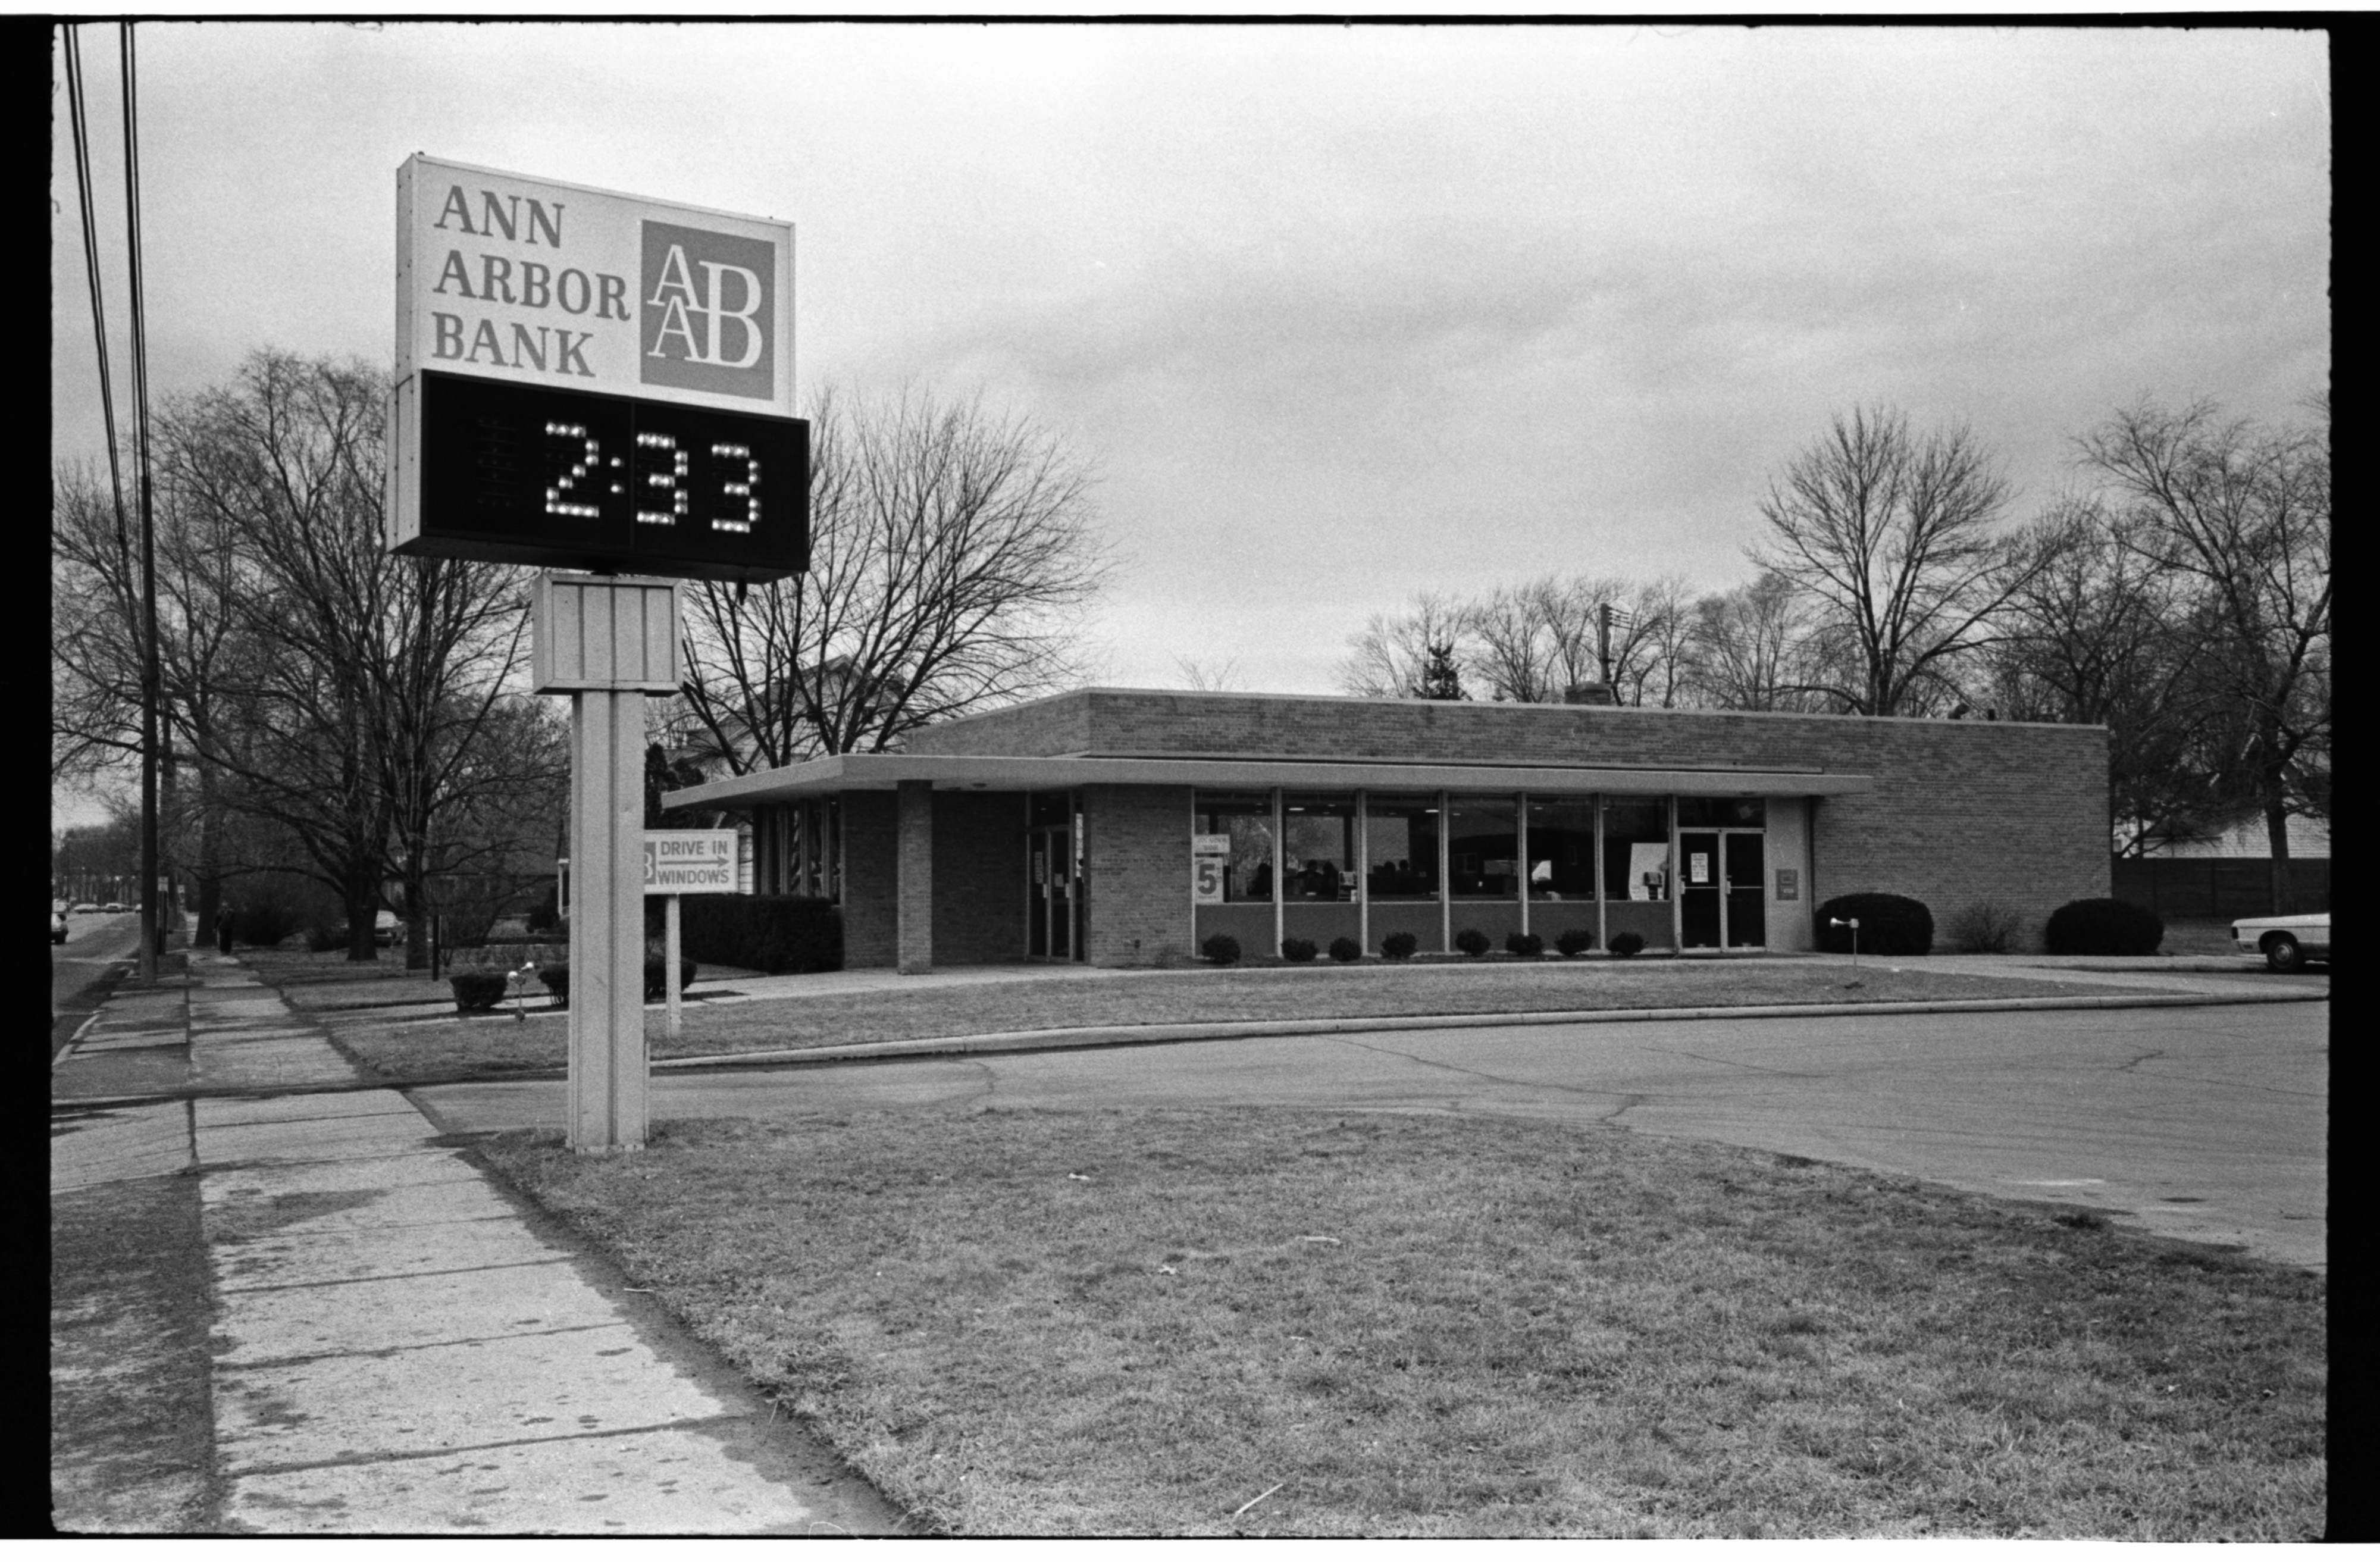 Armed Robbery at Ann Arbor Bank Branch on Packard Rd, March 1973 image